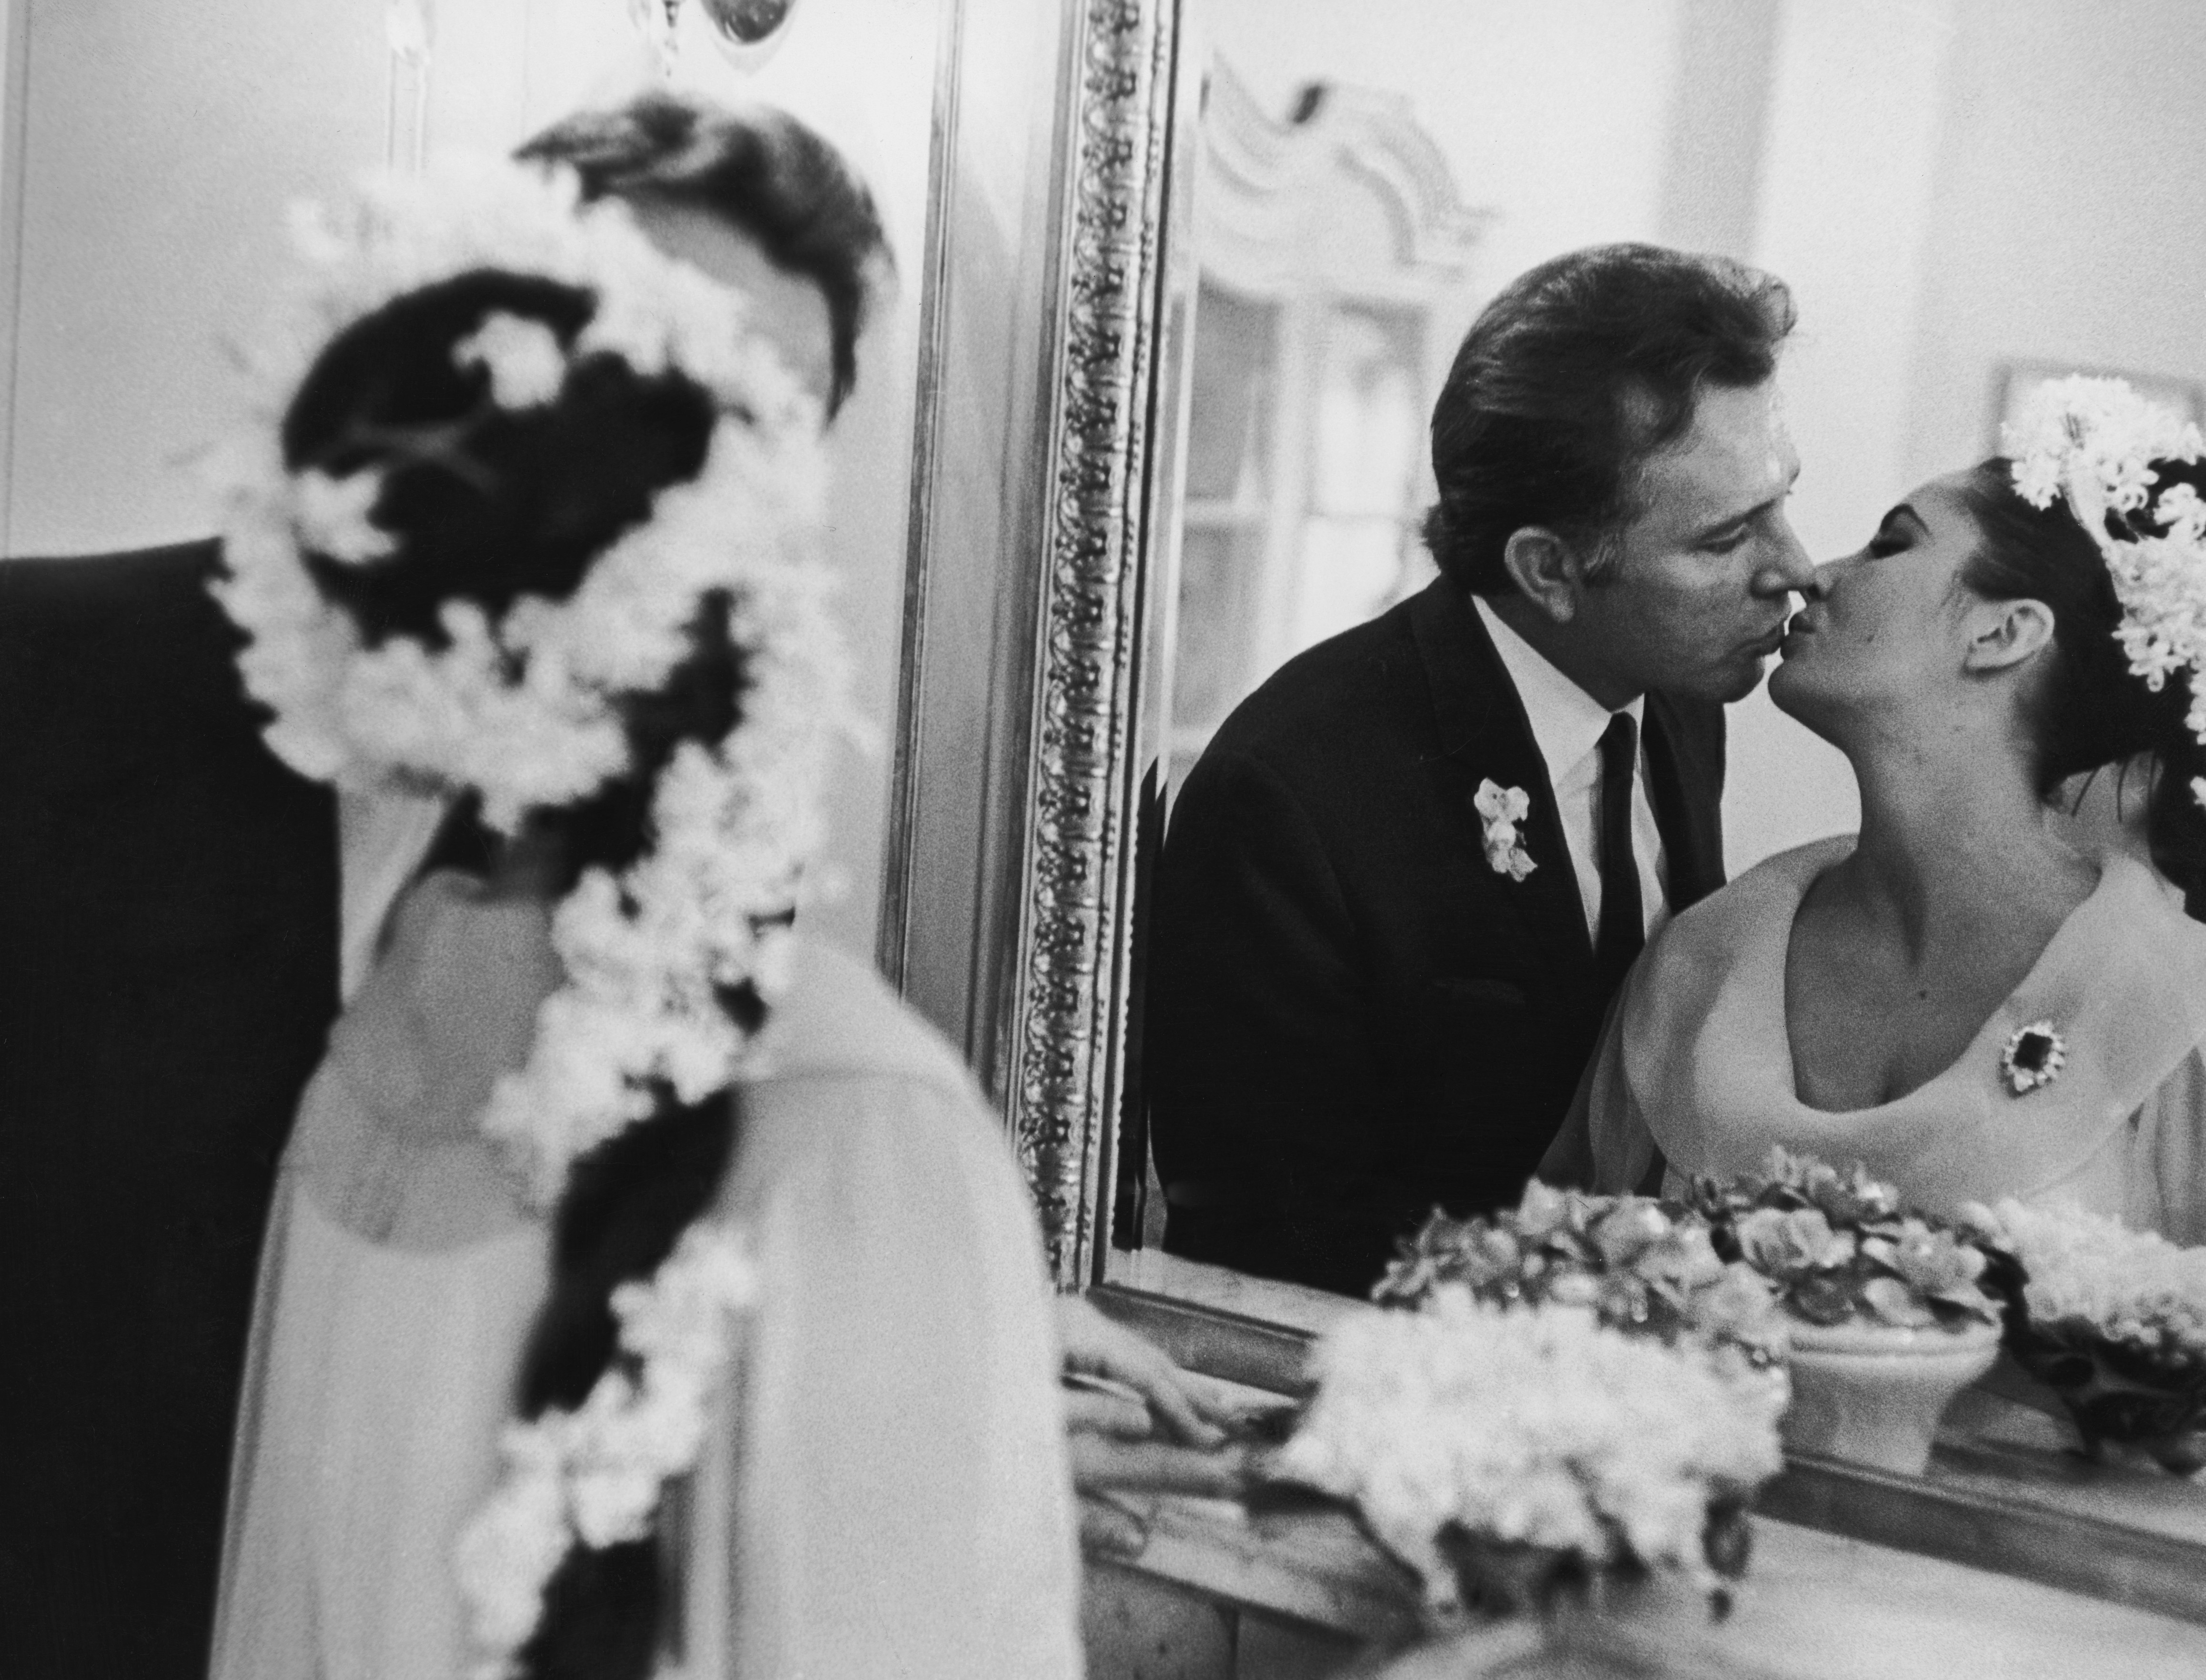 15th March 1964: Elizabeth Taylor marries her fifth husband Richard Burton (1925-1984) in Montreal.